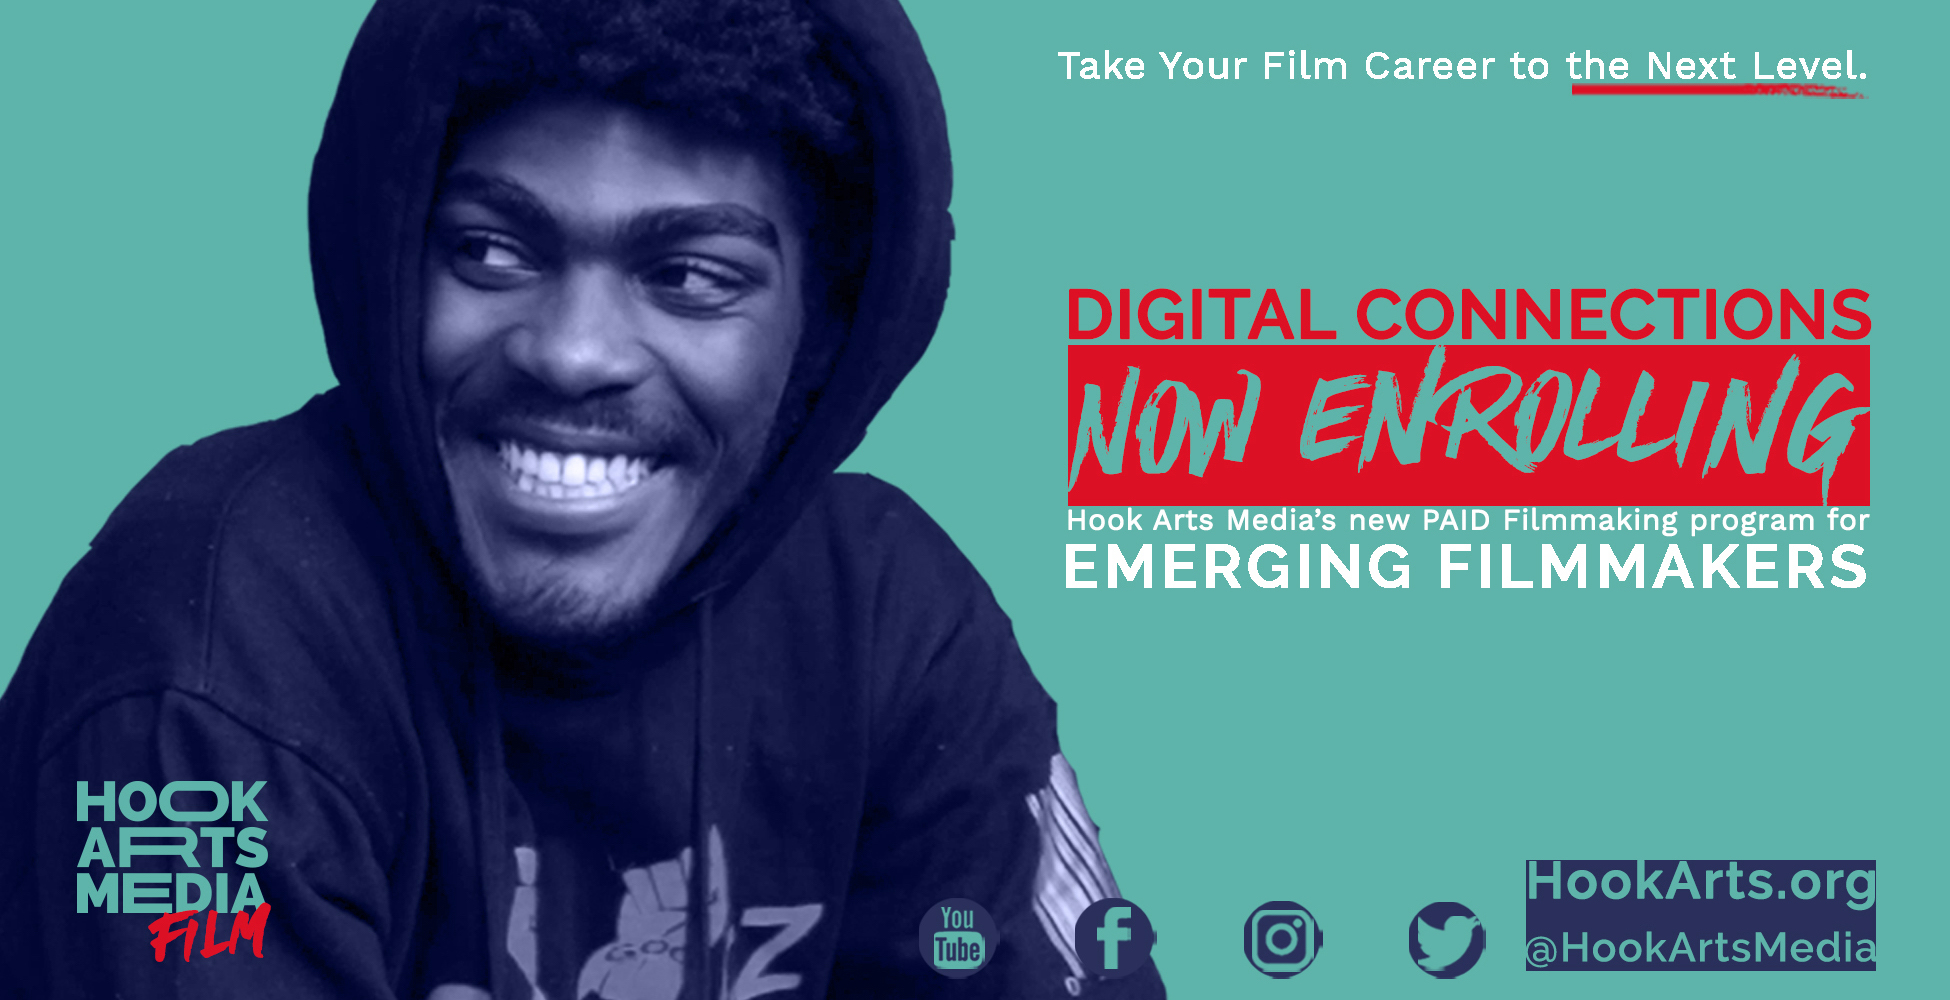 Digital Connections currently accepting applications for the 2021-22 film fellows